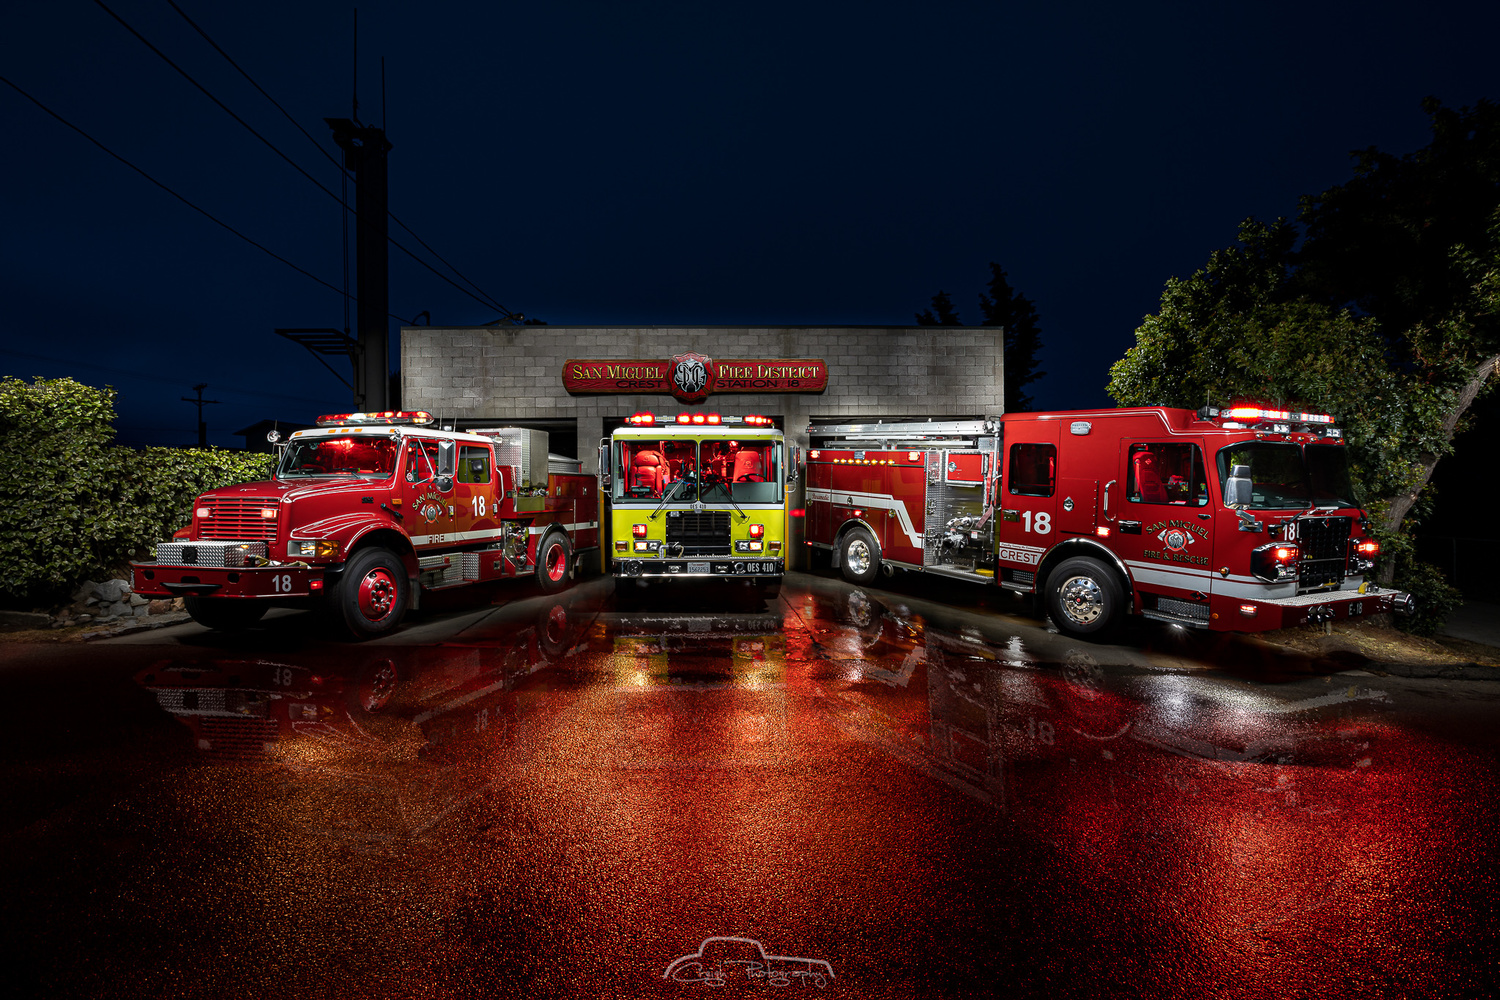 San Miguel Fire Station 18. by Creigh McIntyre